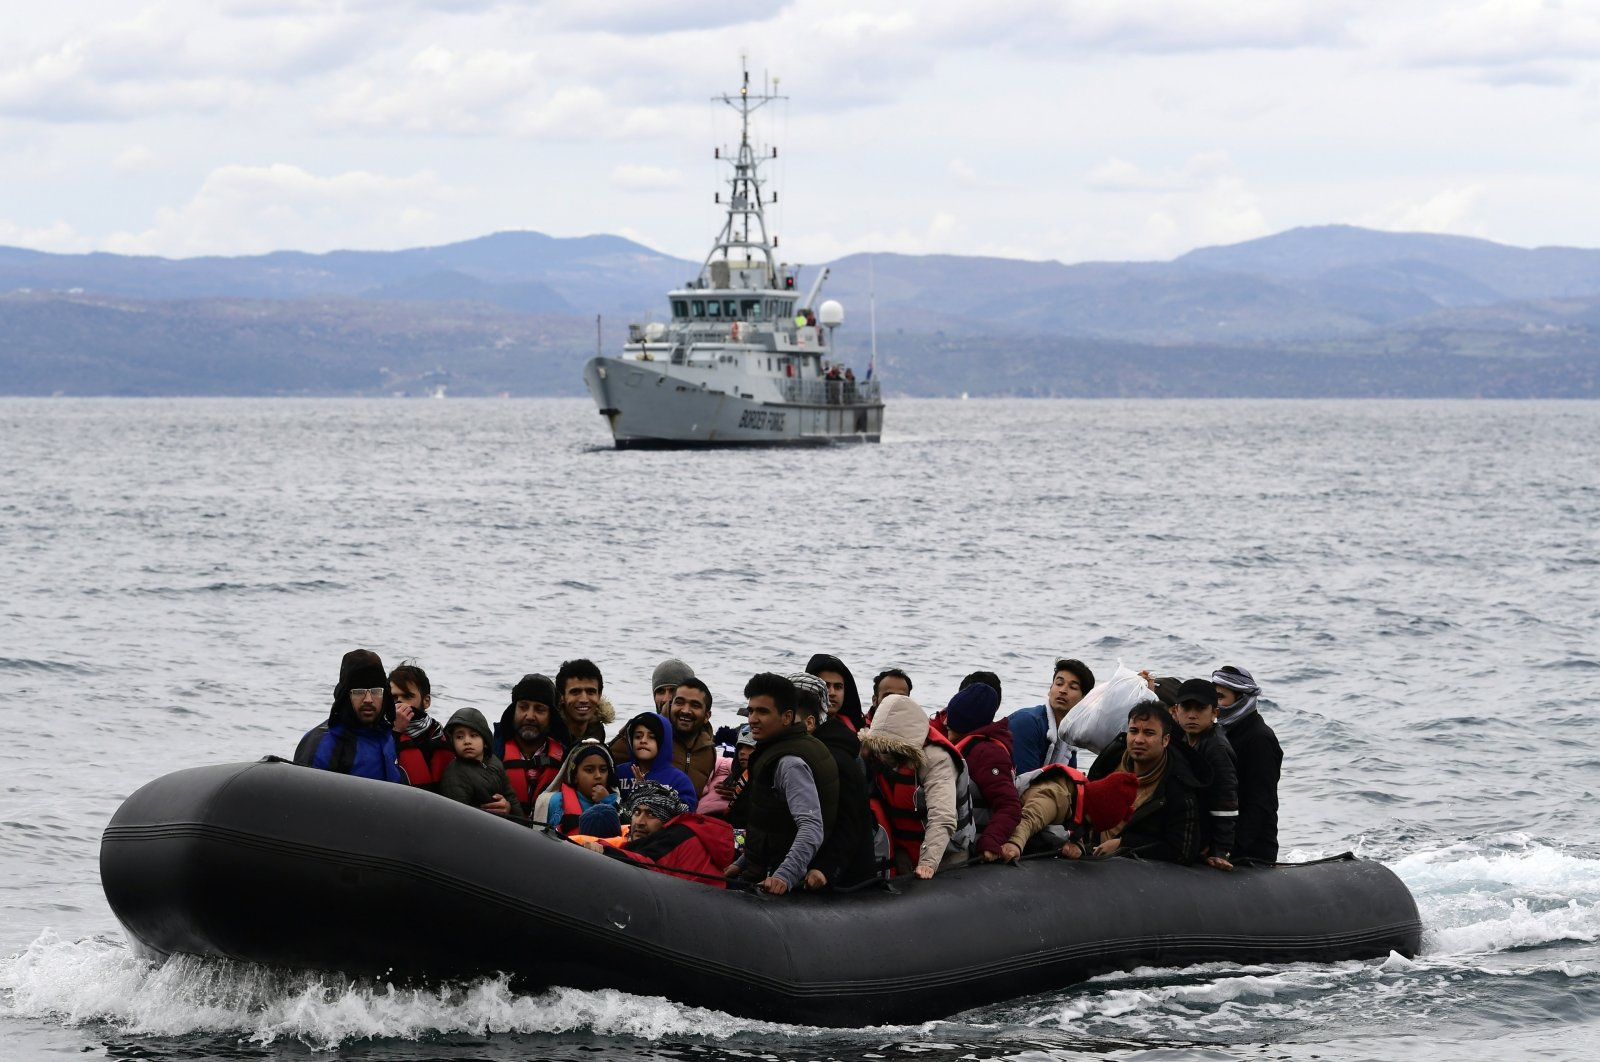 Migrants arrive with a dinghy accompanied by a Frontex vessel at the village of Skala Sikaminias, on the Greek island of Lesbos, after crossing the Aegean sea from Turkey, on Friday, Feb. 28, 2020. (AP File Photo)